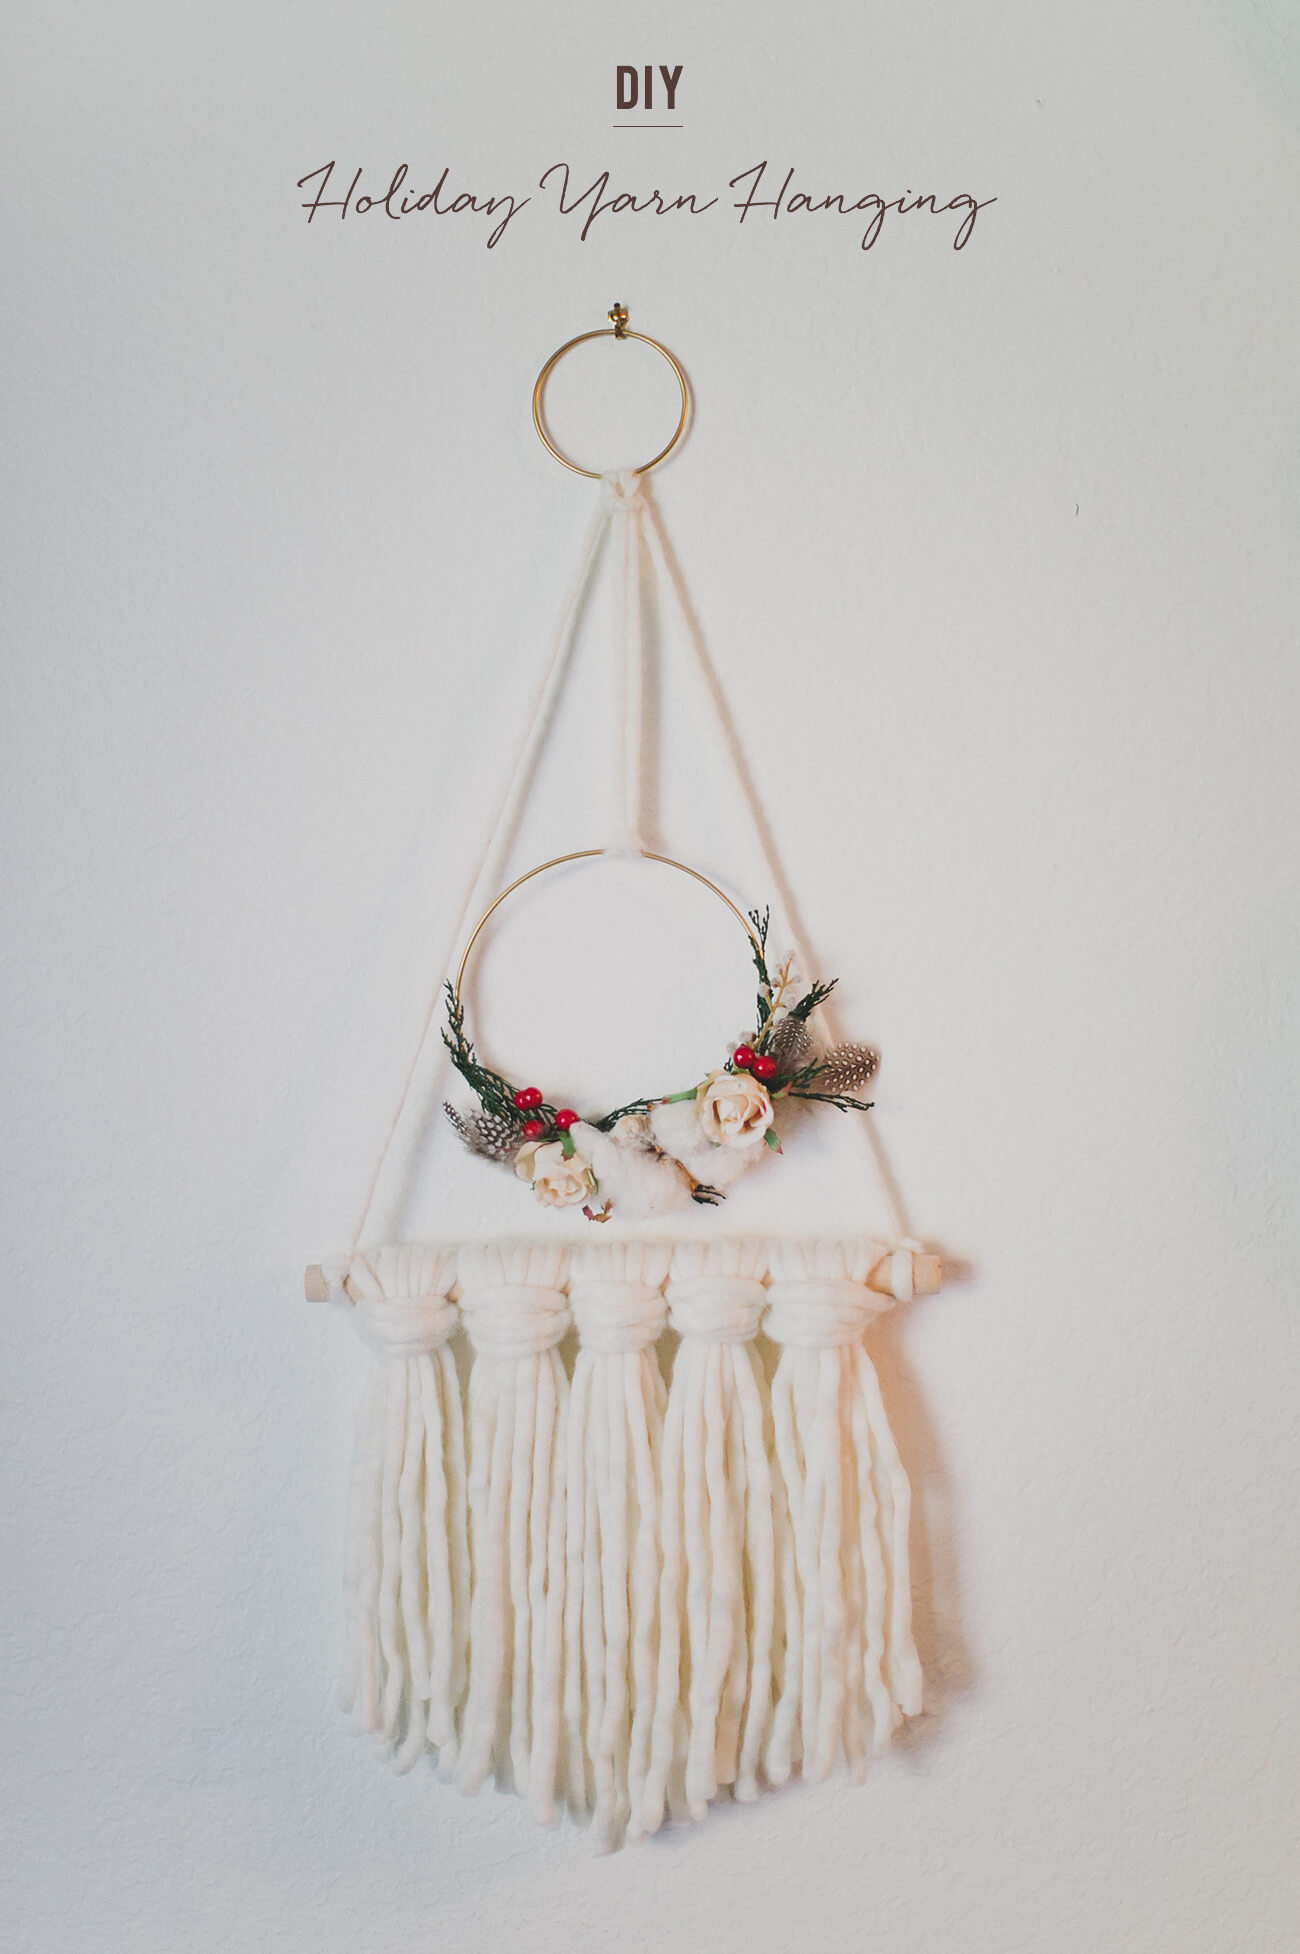 Mini Floral and Macrame Yarn Wall Hanging